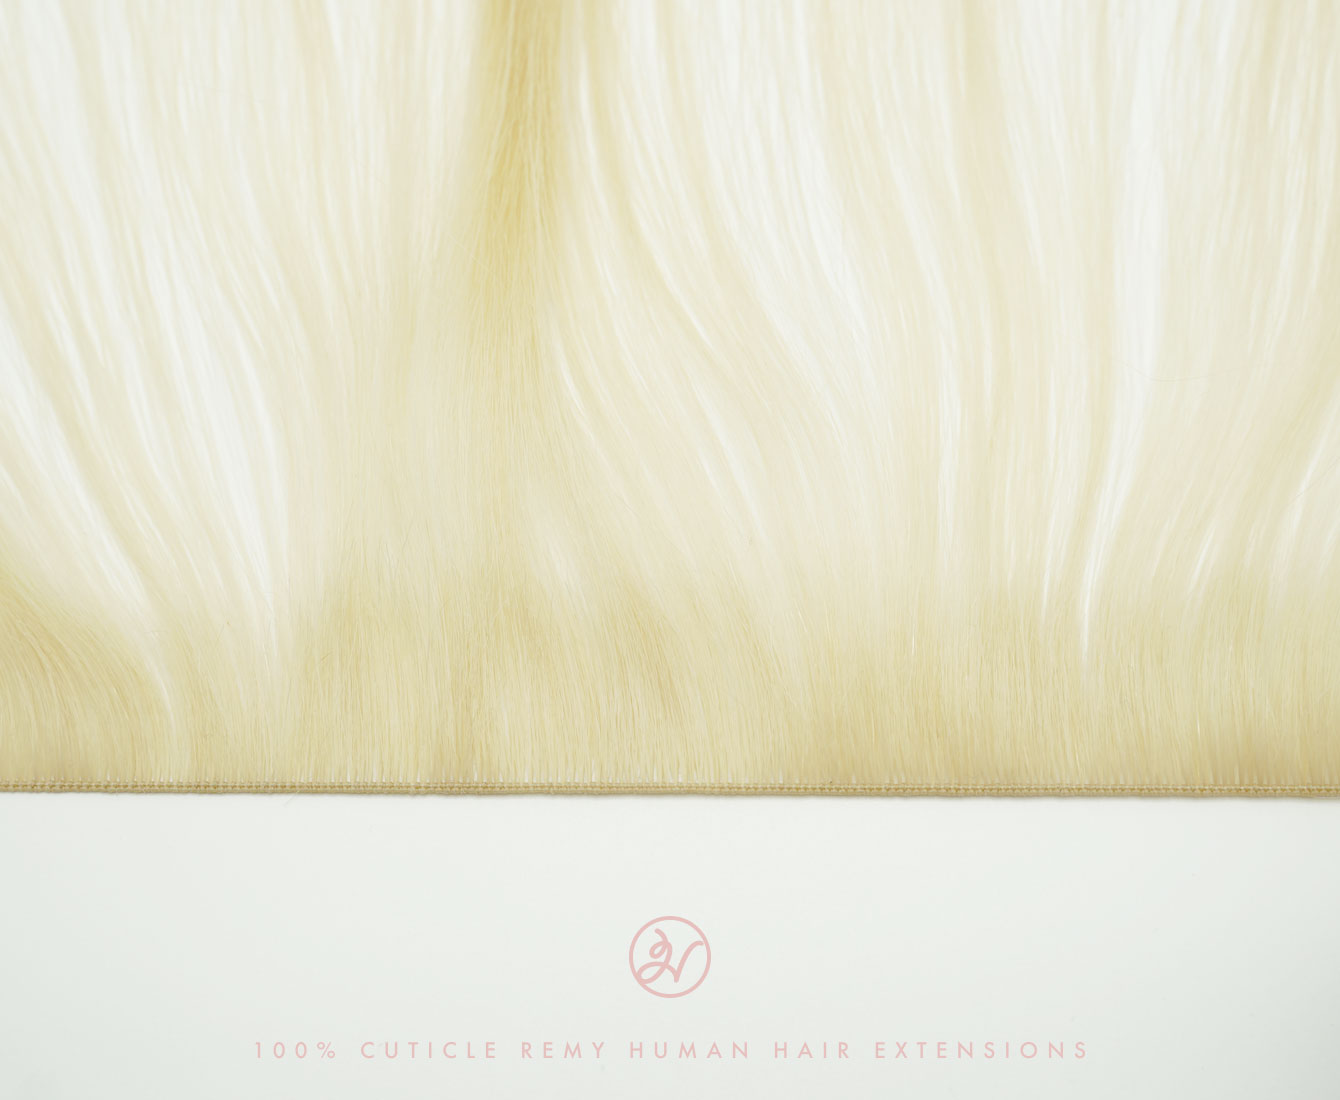 Weft of Hairlaya's Hand-Tied Hair Extensions